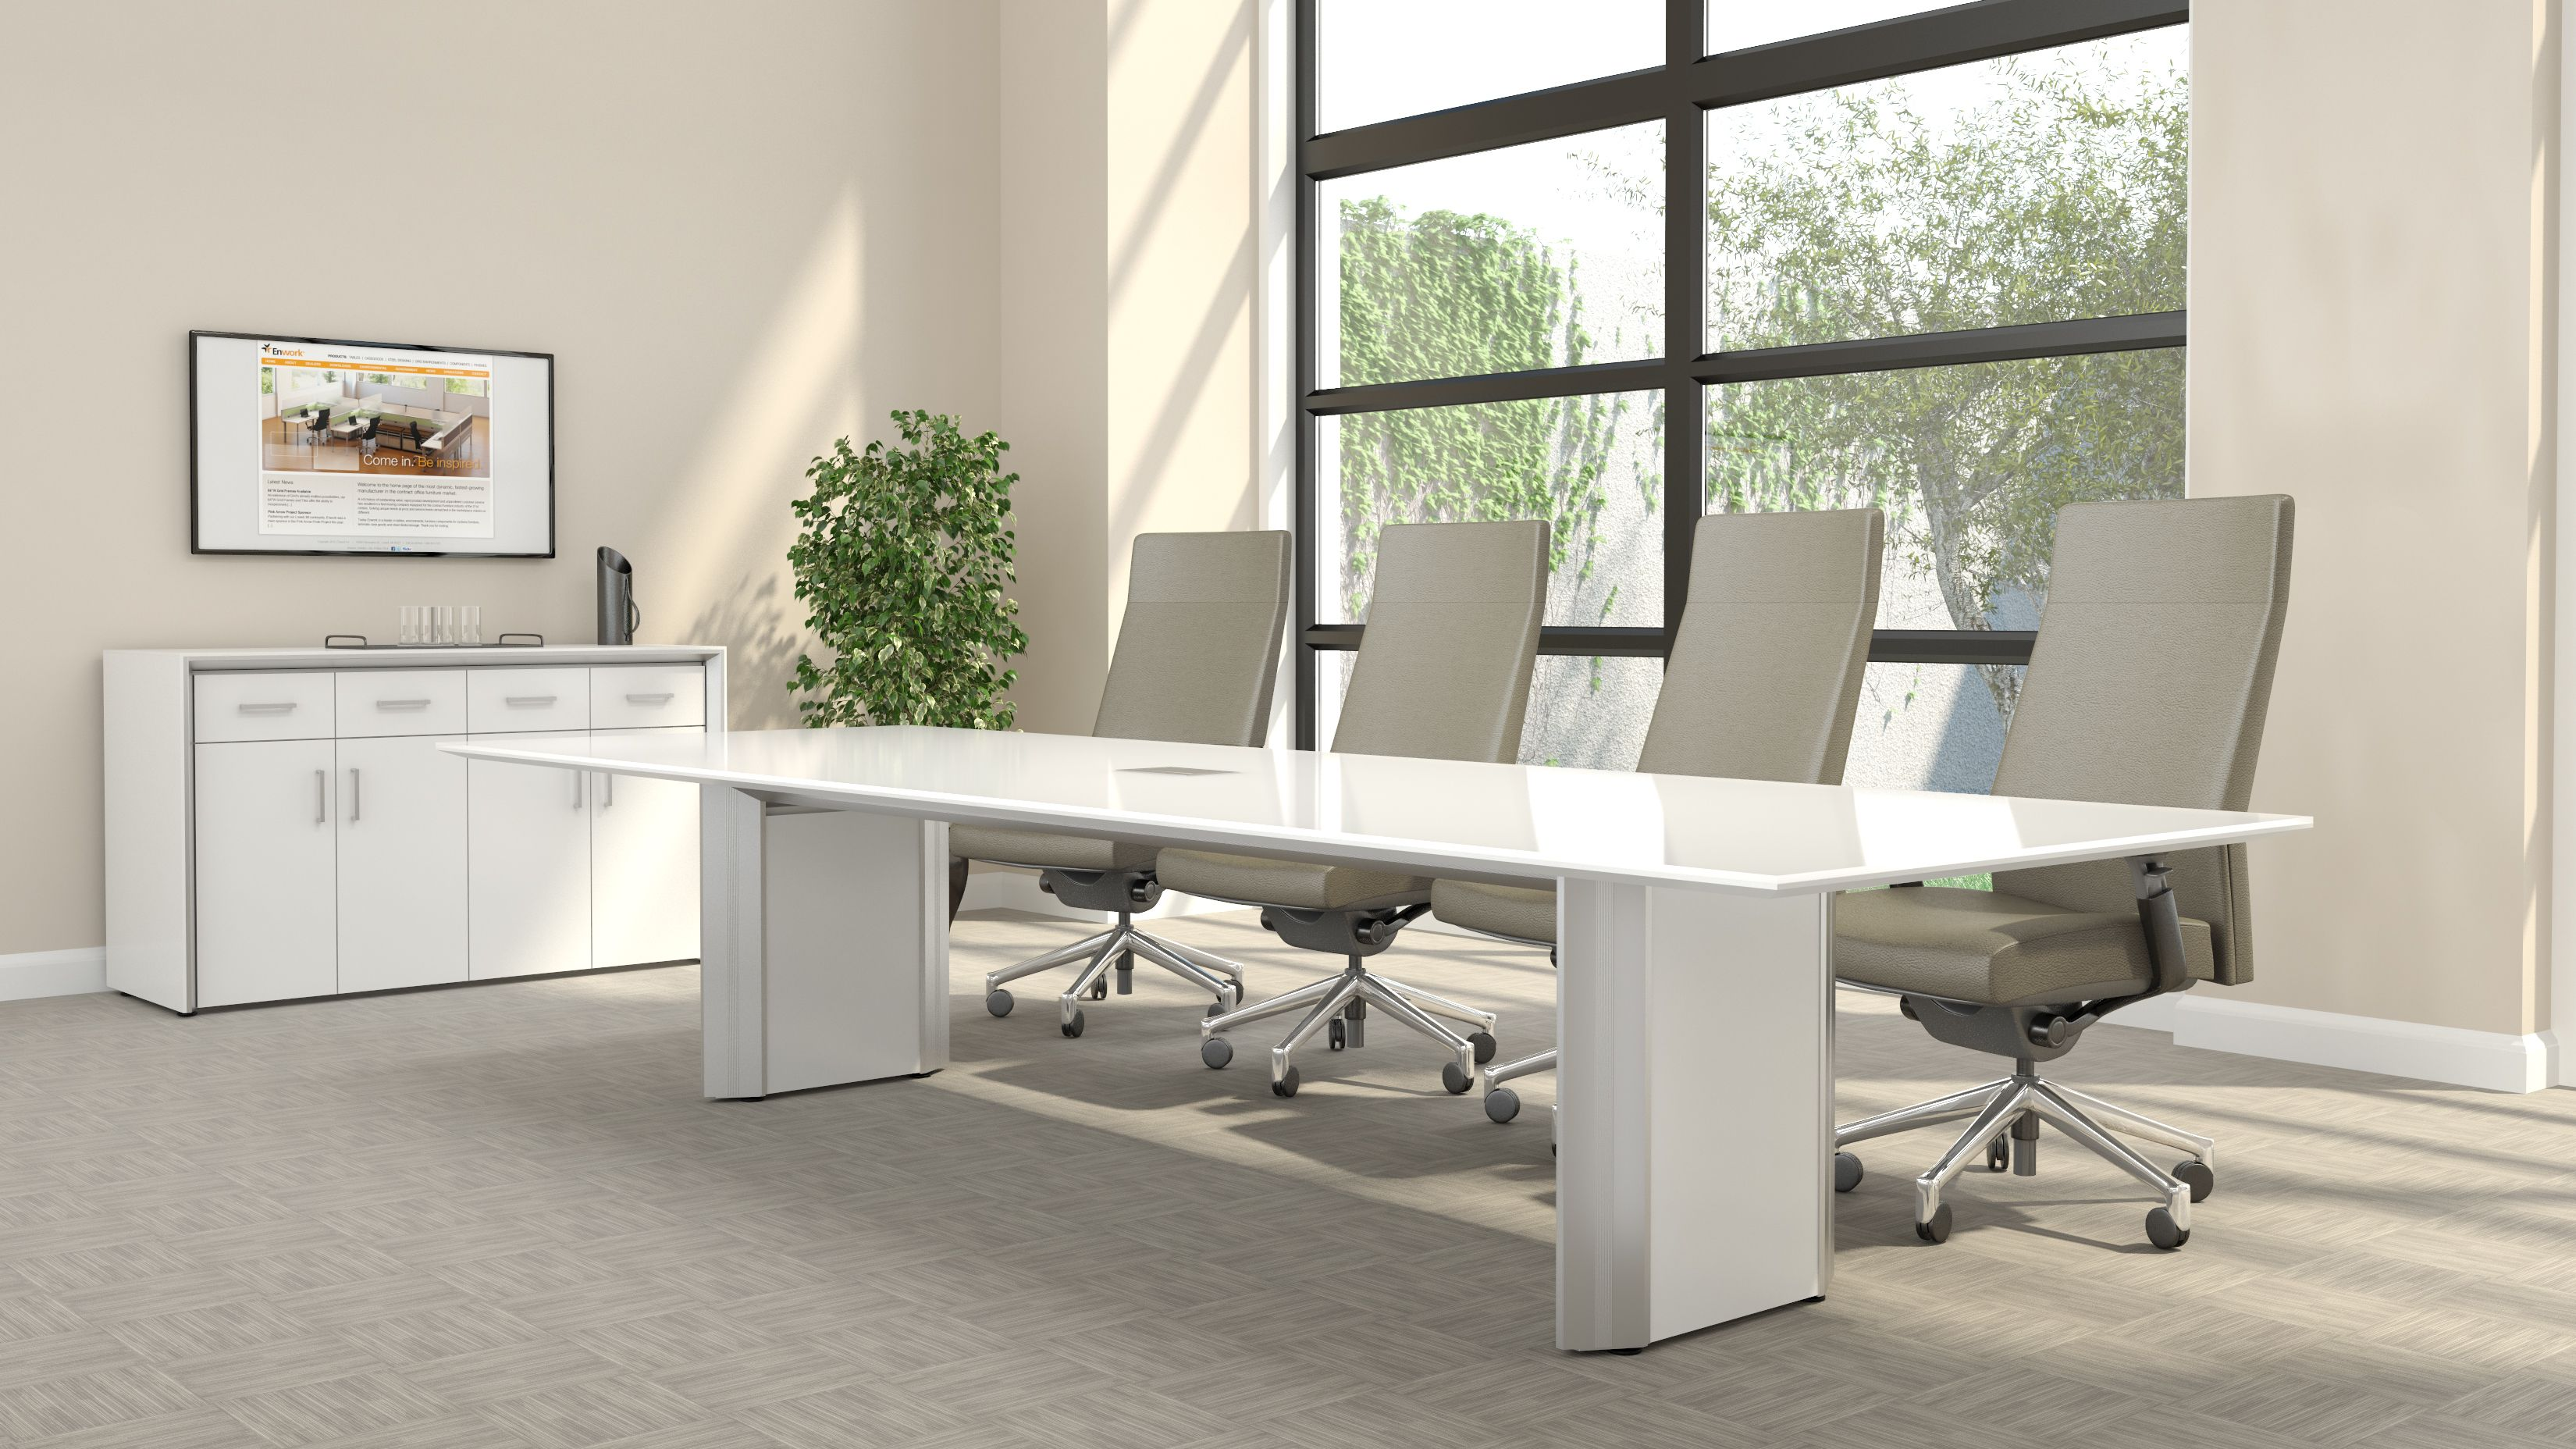 Enwork 12 Stealth Conference Table Modern Conference Table Modern Office Furniture Design Modern Conference Table Design